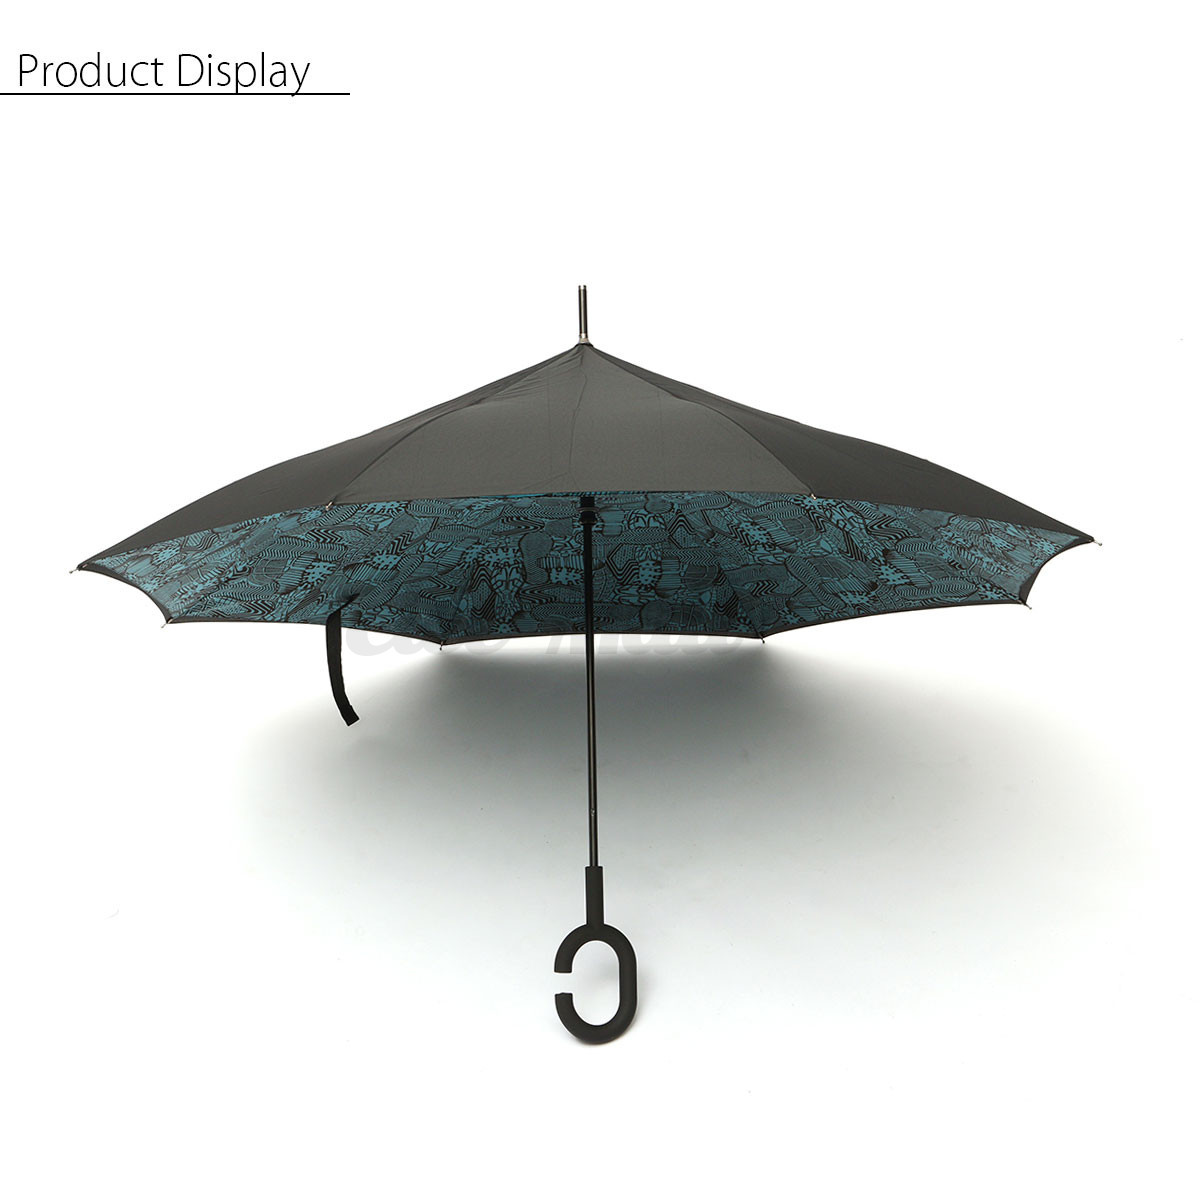 anti uv vent pluie soleil parapluie umbrella parasol invers double couche femme ebay. Black Bedroom Furniture Sets. Home Design Ideas